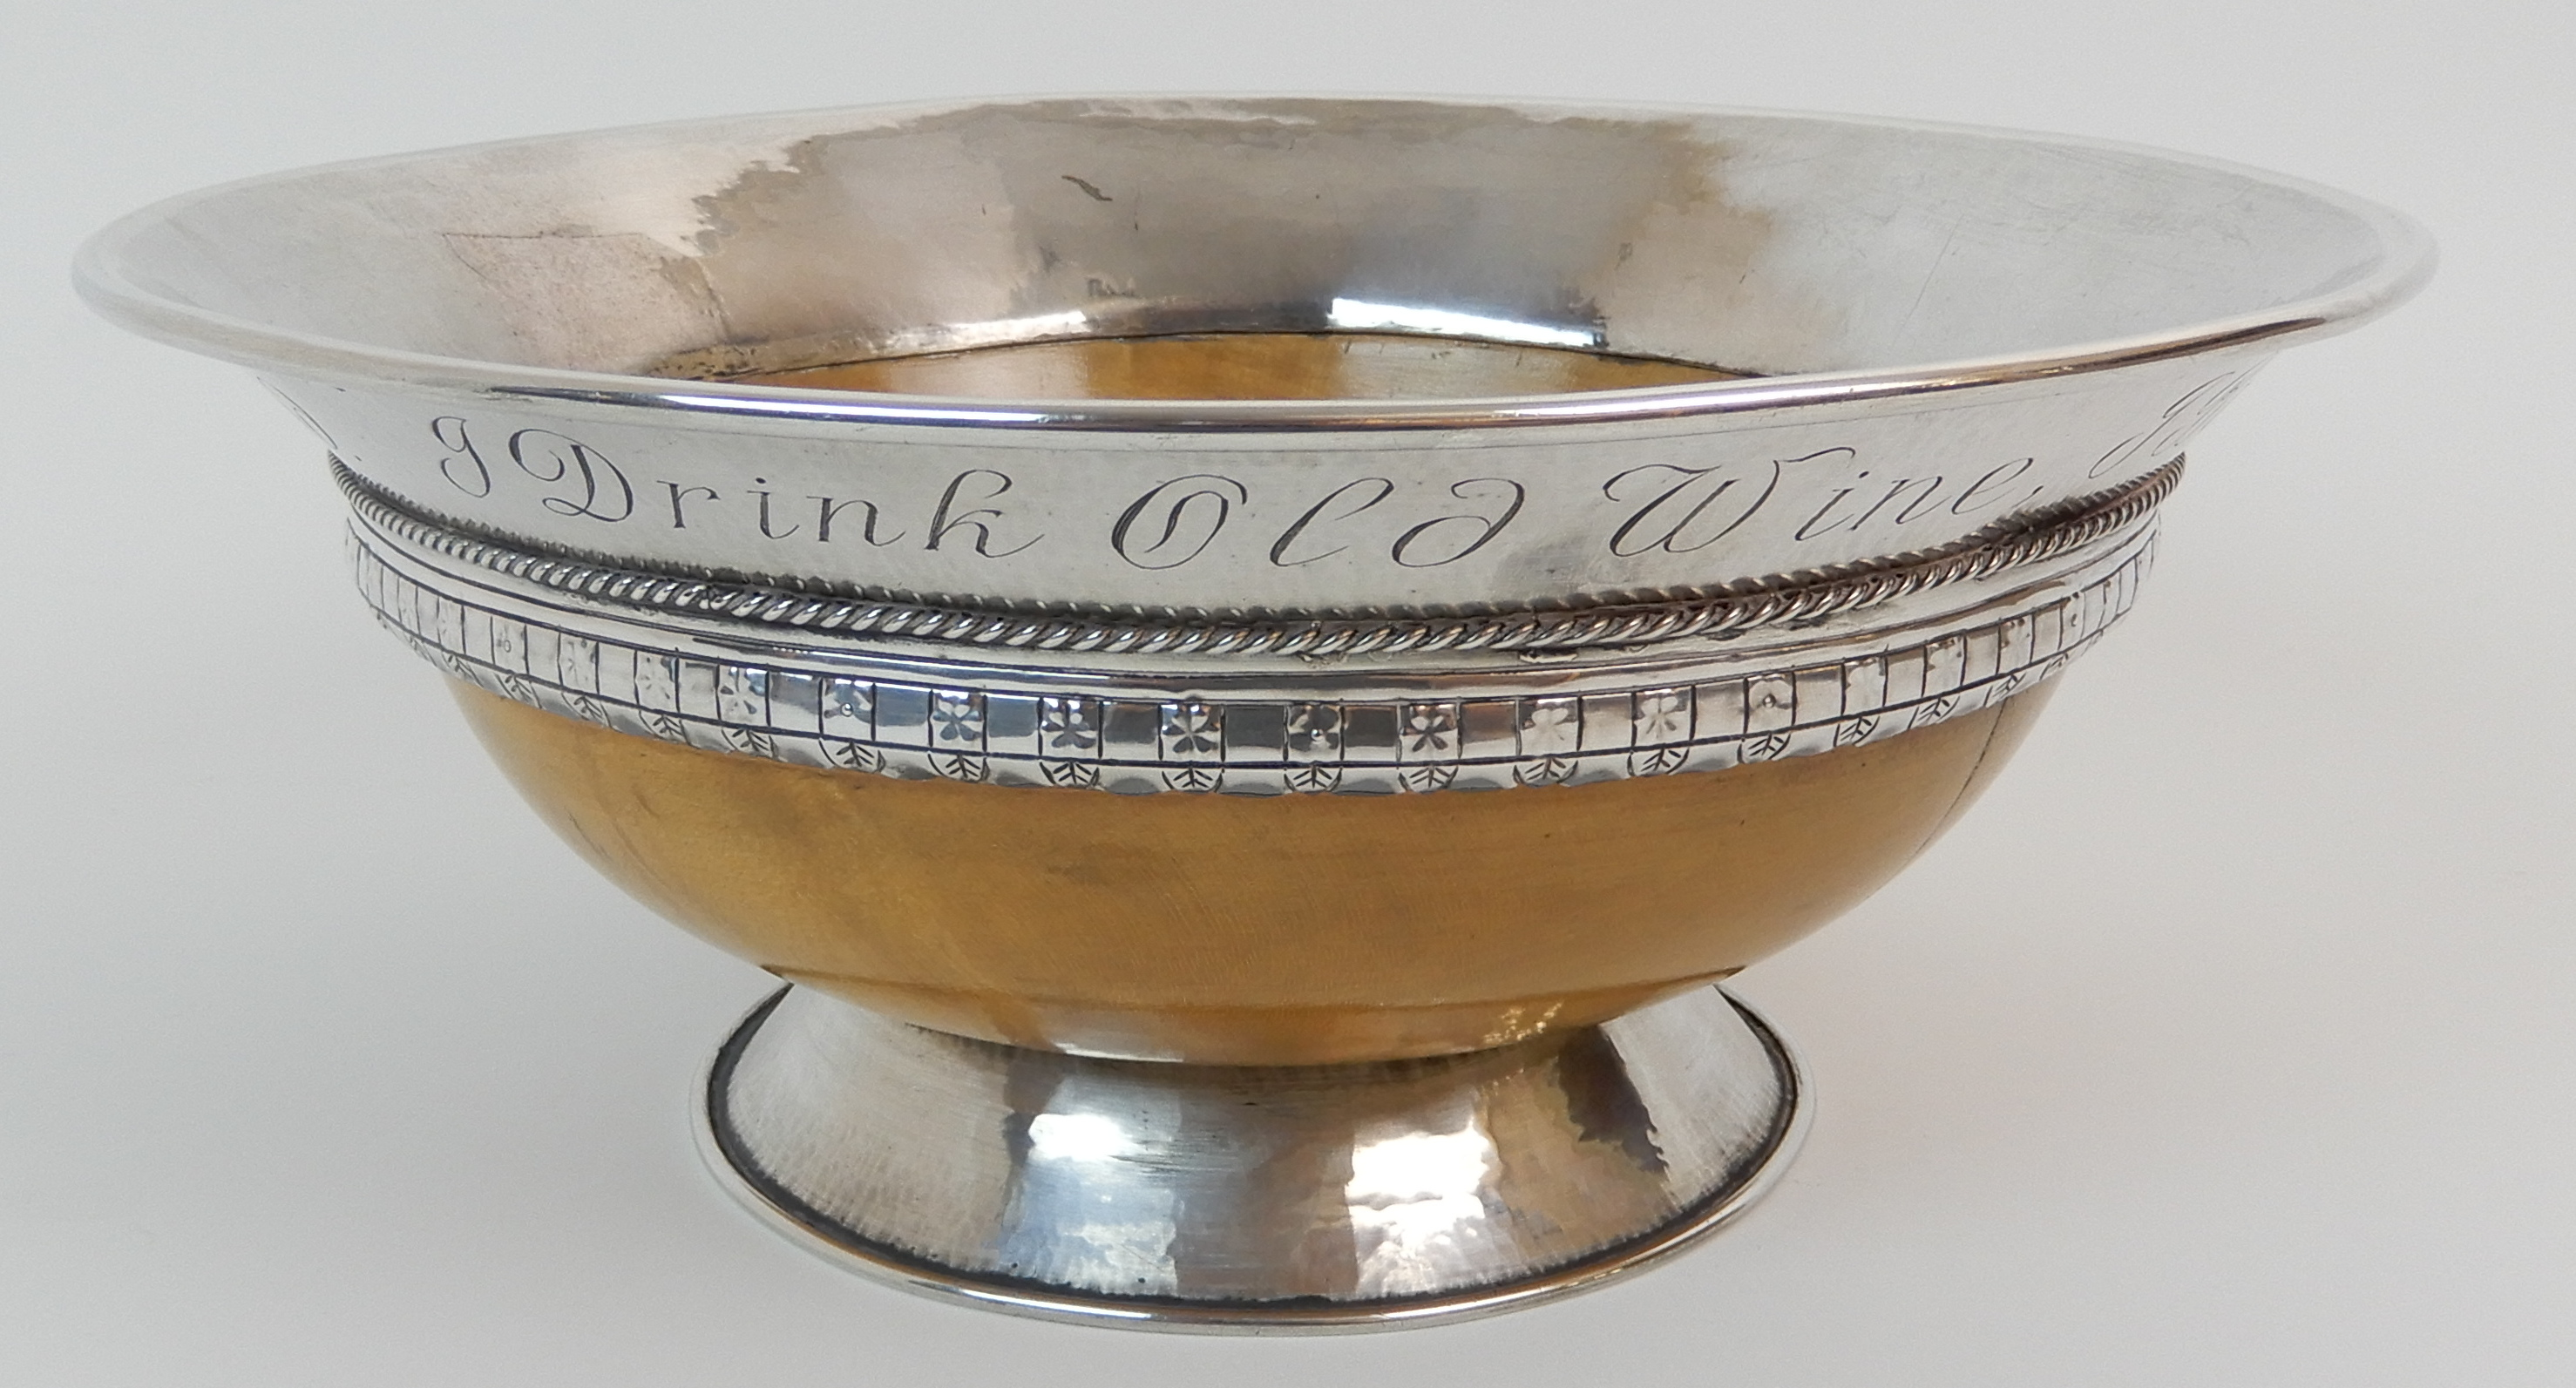 AN ARTS AND CRAFTS SILVER MOUNTED TREEN BOWL by Elizabeth Henry Kirkwood, Edinburgh 1947, or